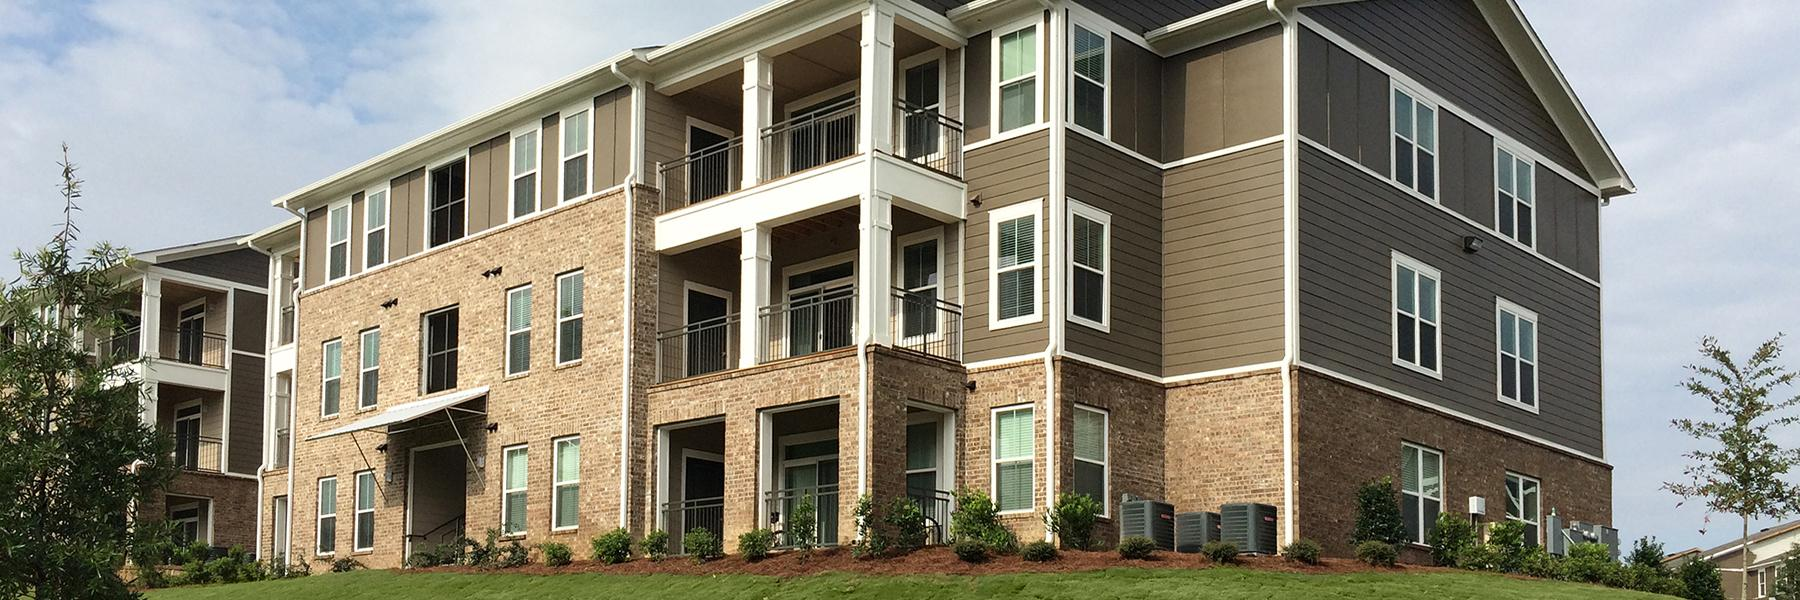 Apartments For Rent In Chattanooga Tn Apartment Listings